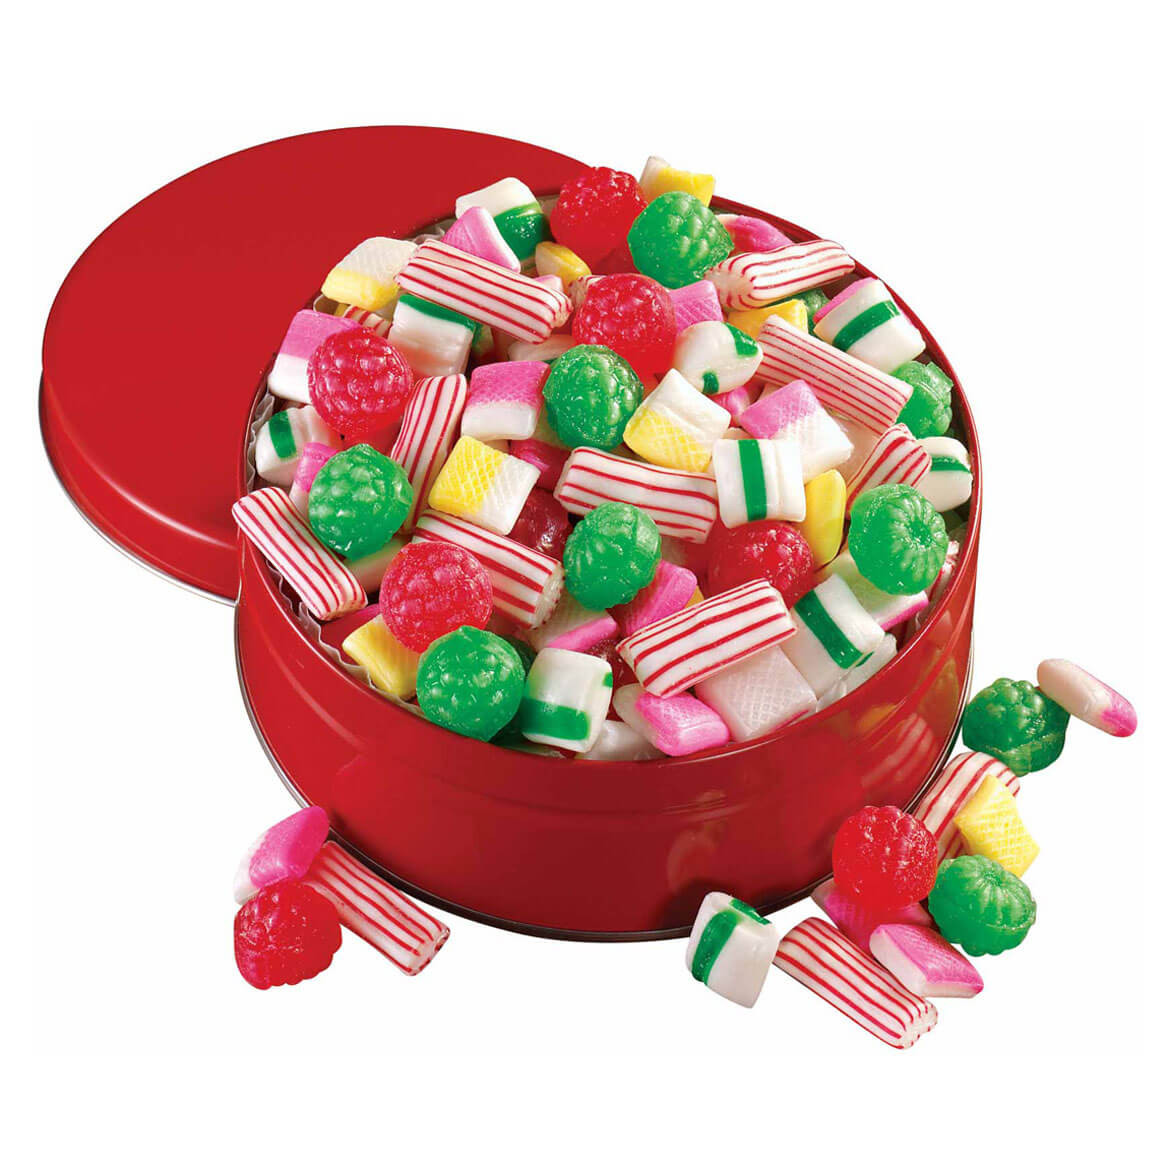 Old Fashioned Christmas Candy  Sugar Free Old Fashioned Christmas Candy Tin Hard Candy